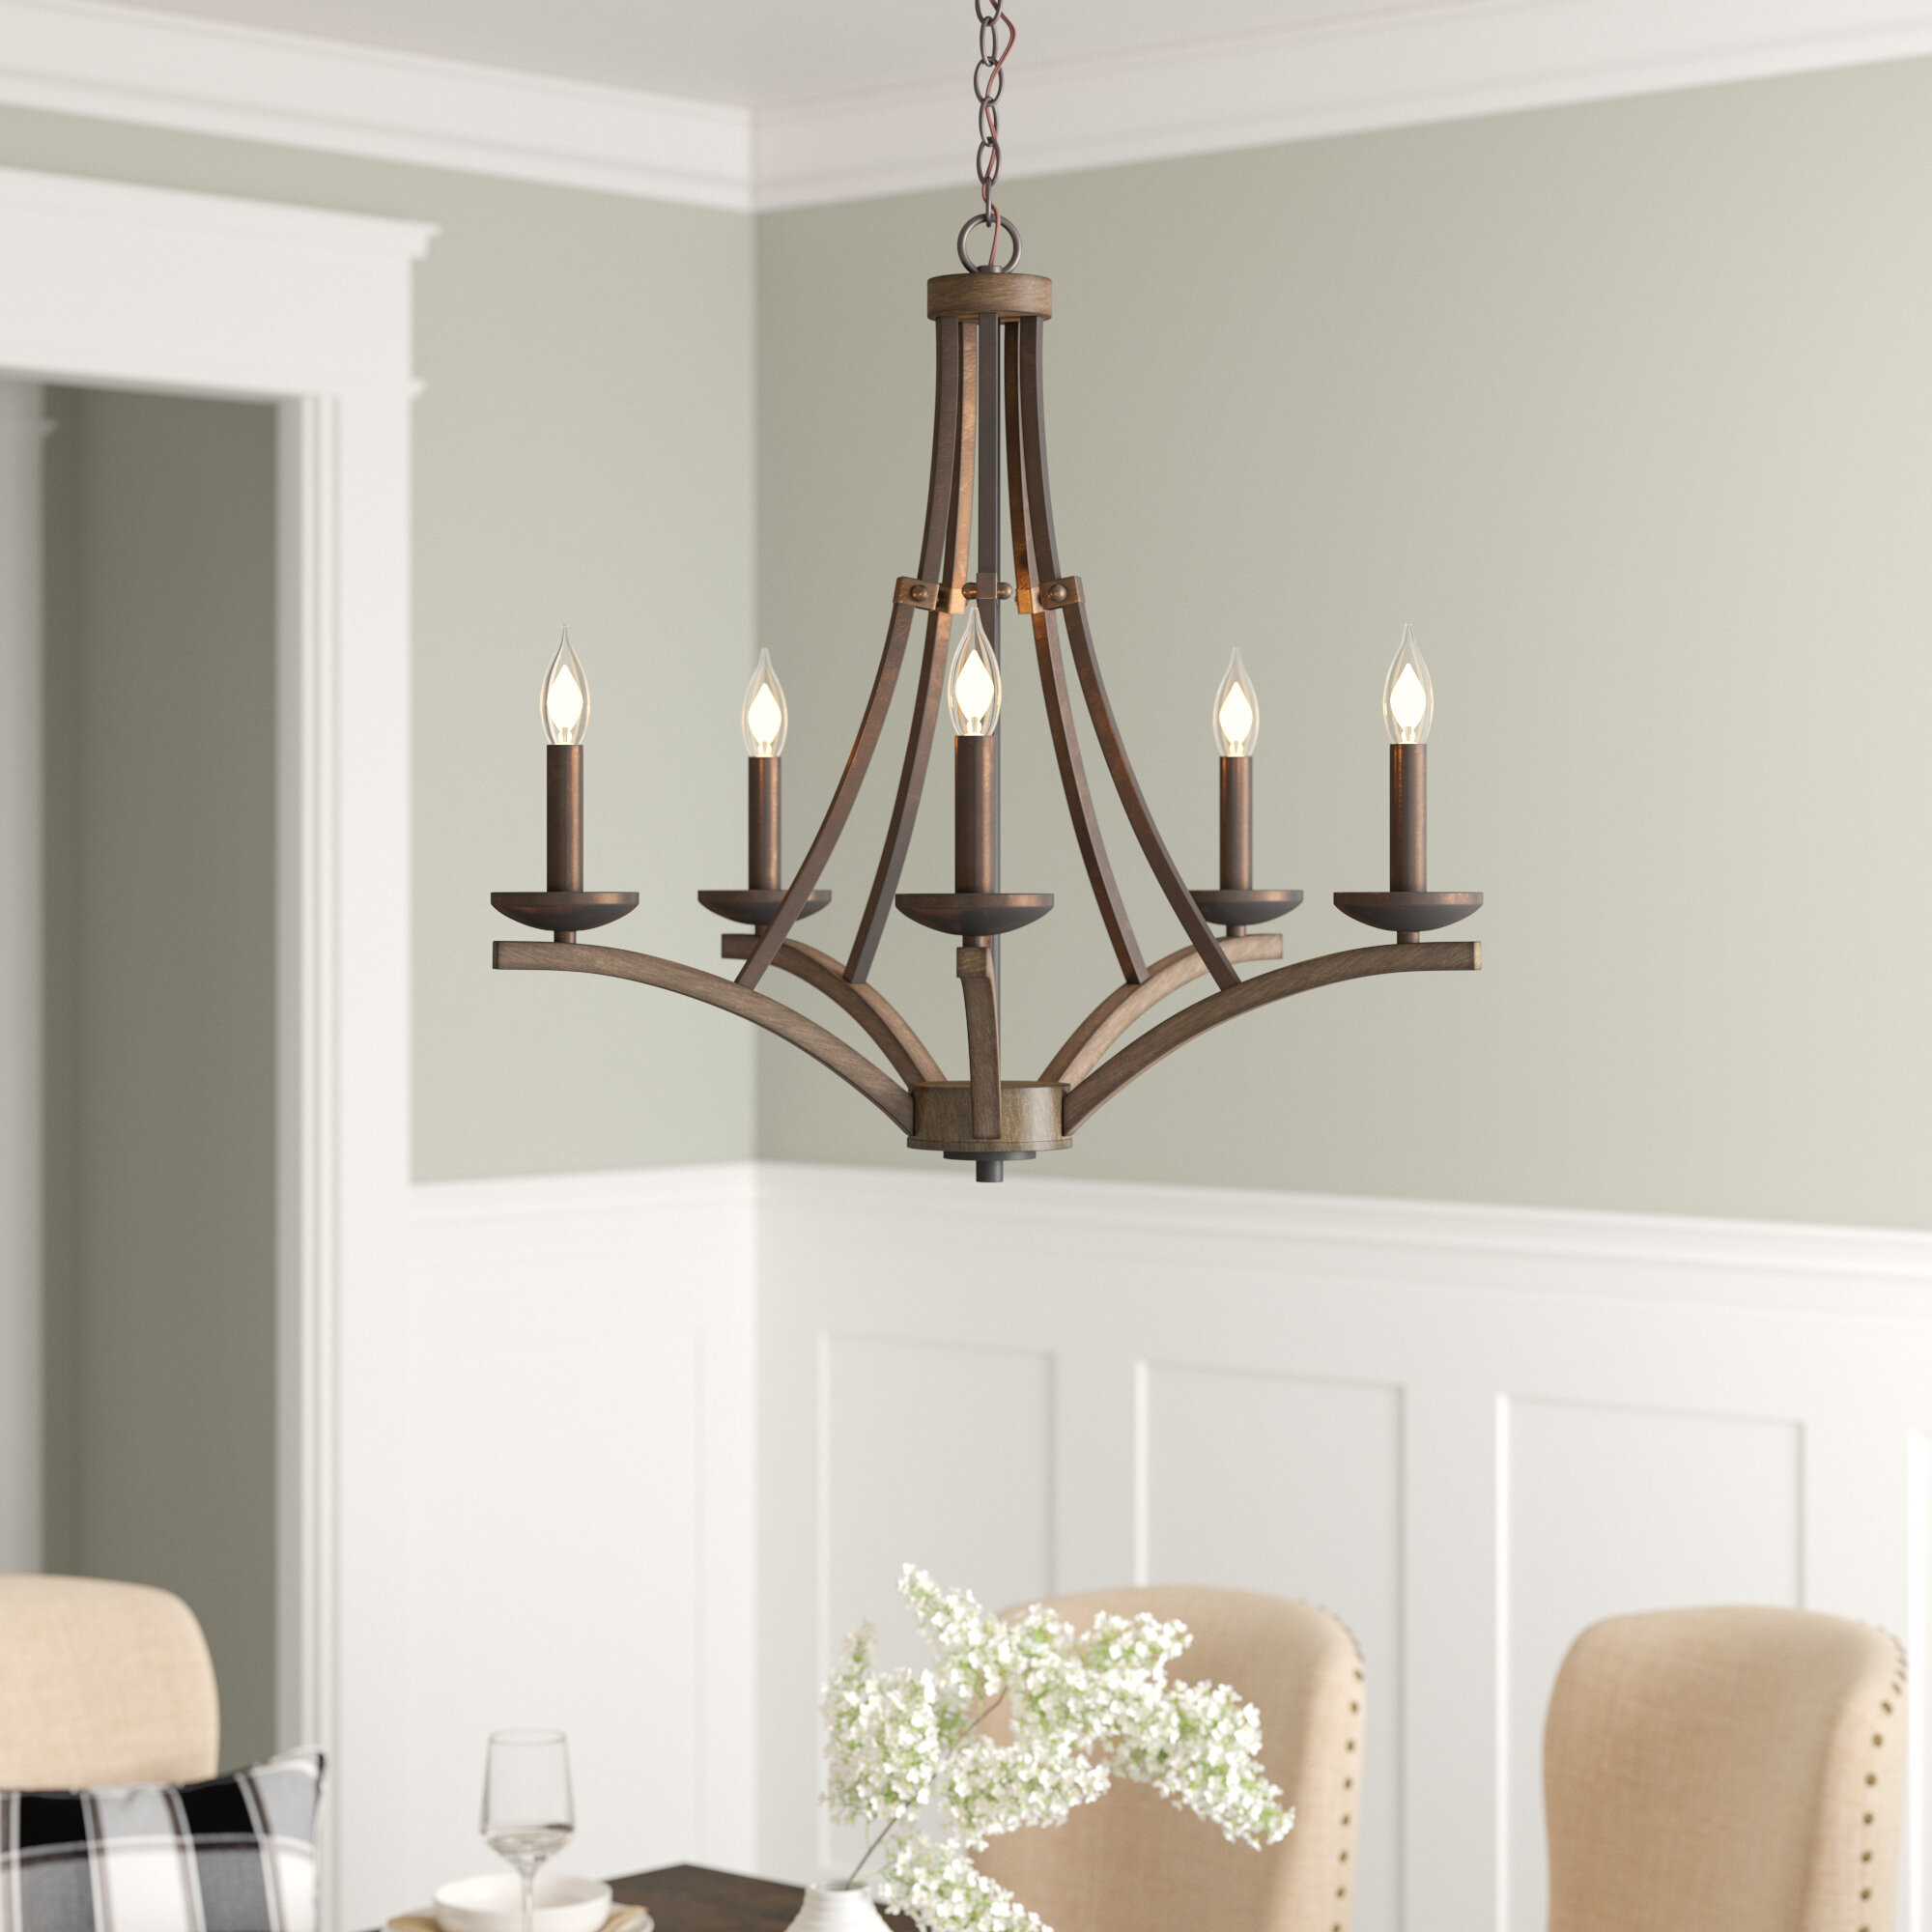 Wireman 5-Light Candle Style Chandelier in Camilla 9-Light Candle Style Chandeliers (Image 30 of 30)